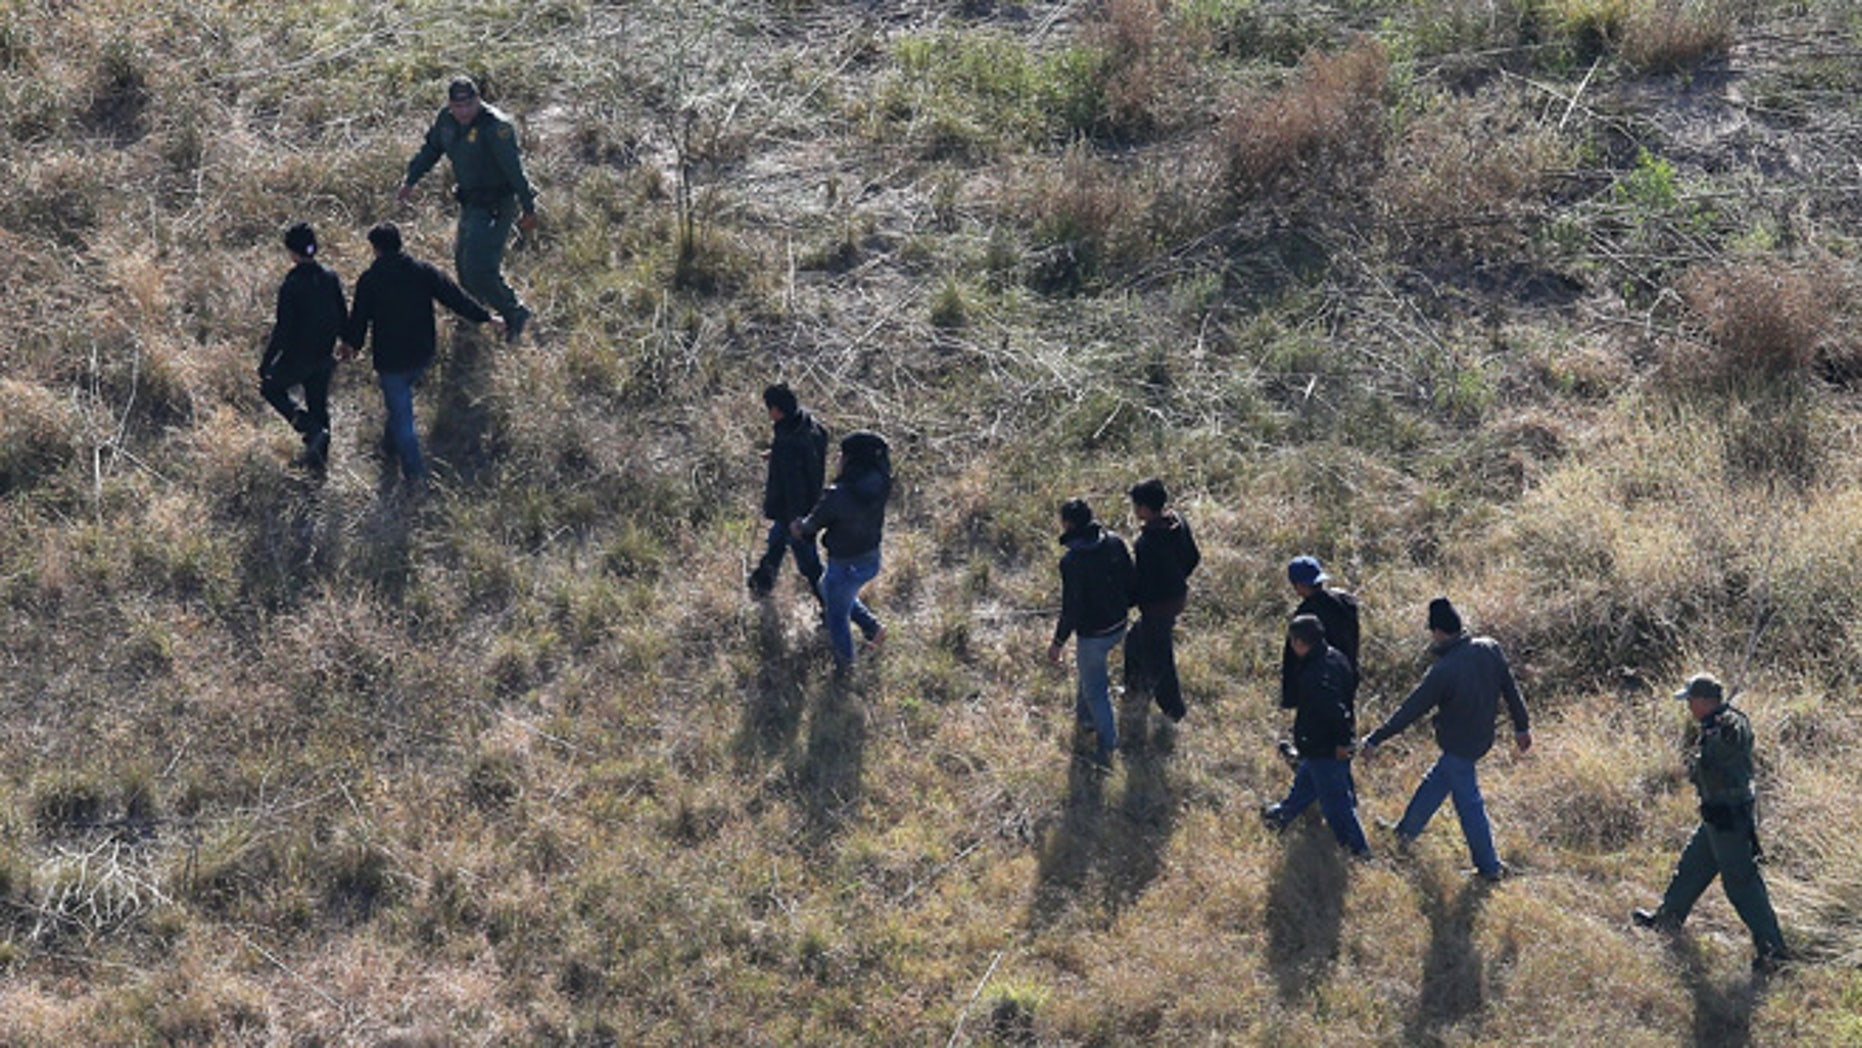 LA GRULLA, TX - DECEMBER 10:  U.S. Border Patrol agents lead undocumented immigrants out the brush after capturing them near the U.S.-Mexico border on December 10, 2015 at La Grulla, Texas. Border security remains a key issue in the U.S. Presidential campaign.  (Photo by John Moore/Getty Images)